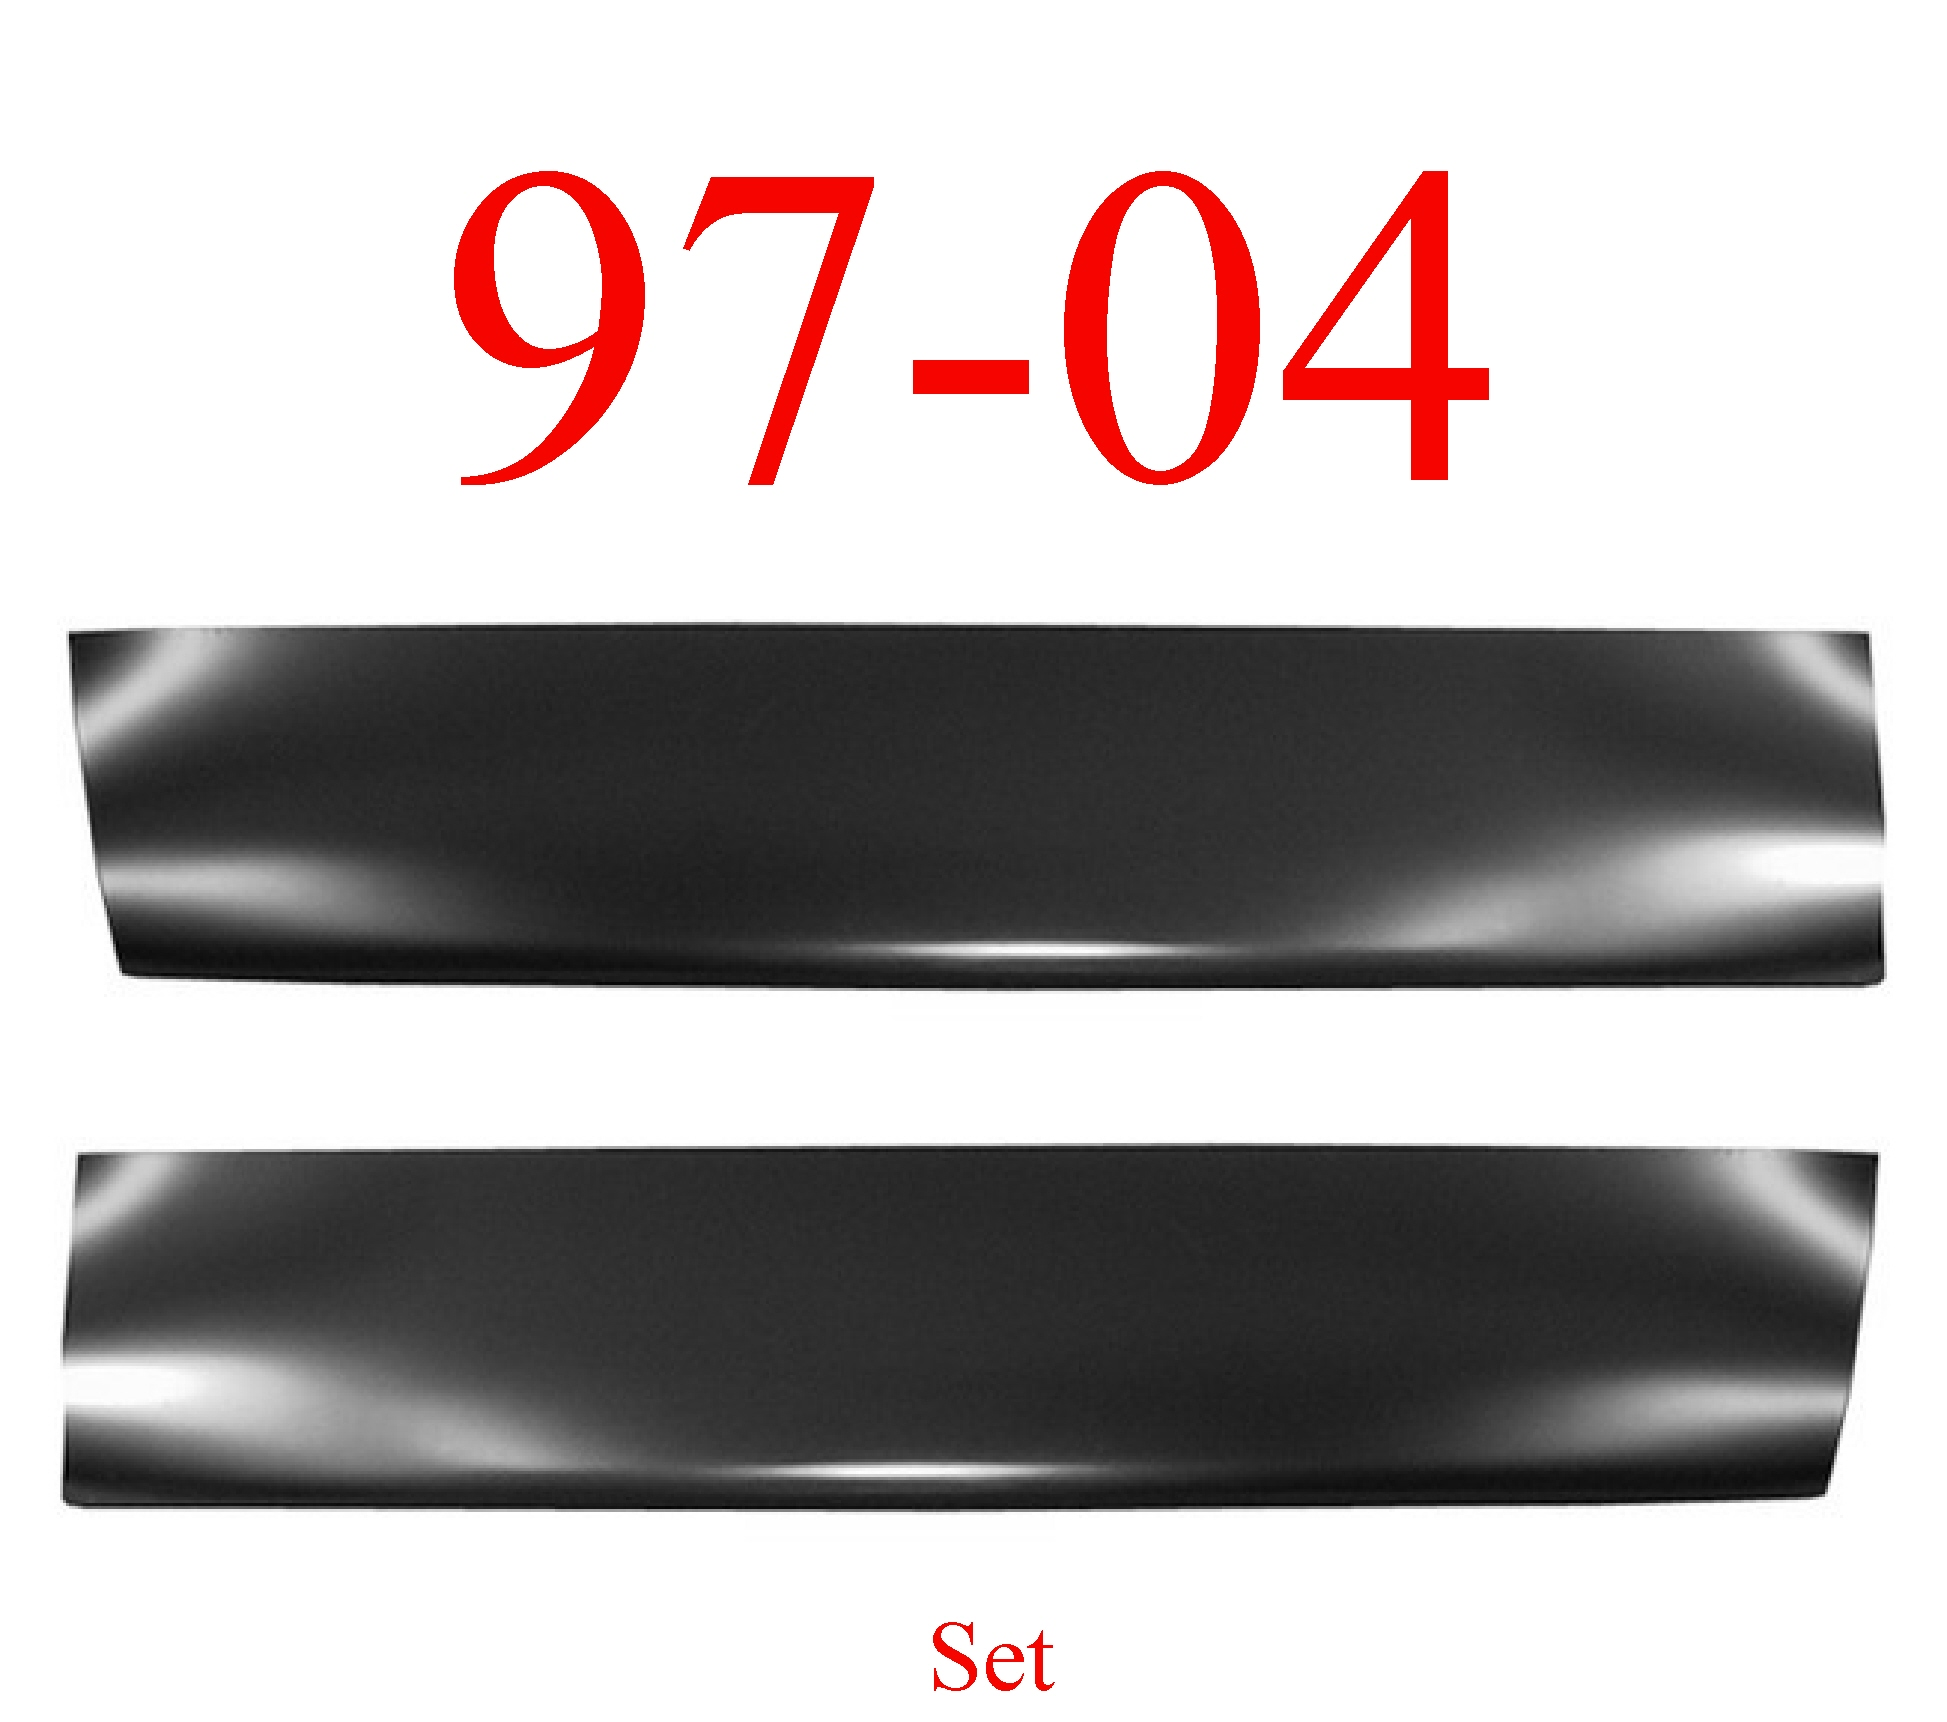 97-04 Dodge Dakota Door Skin Bottom Lower Set